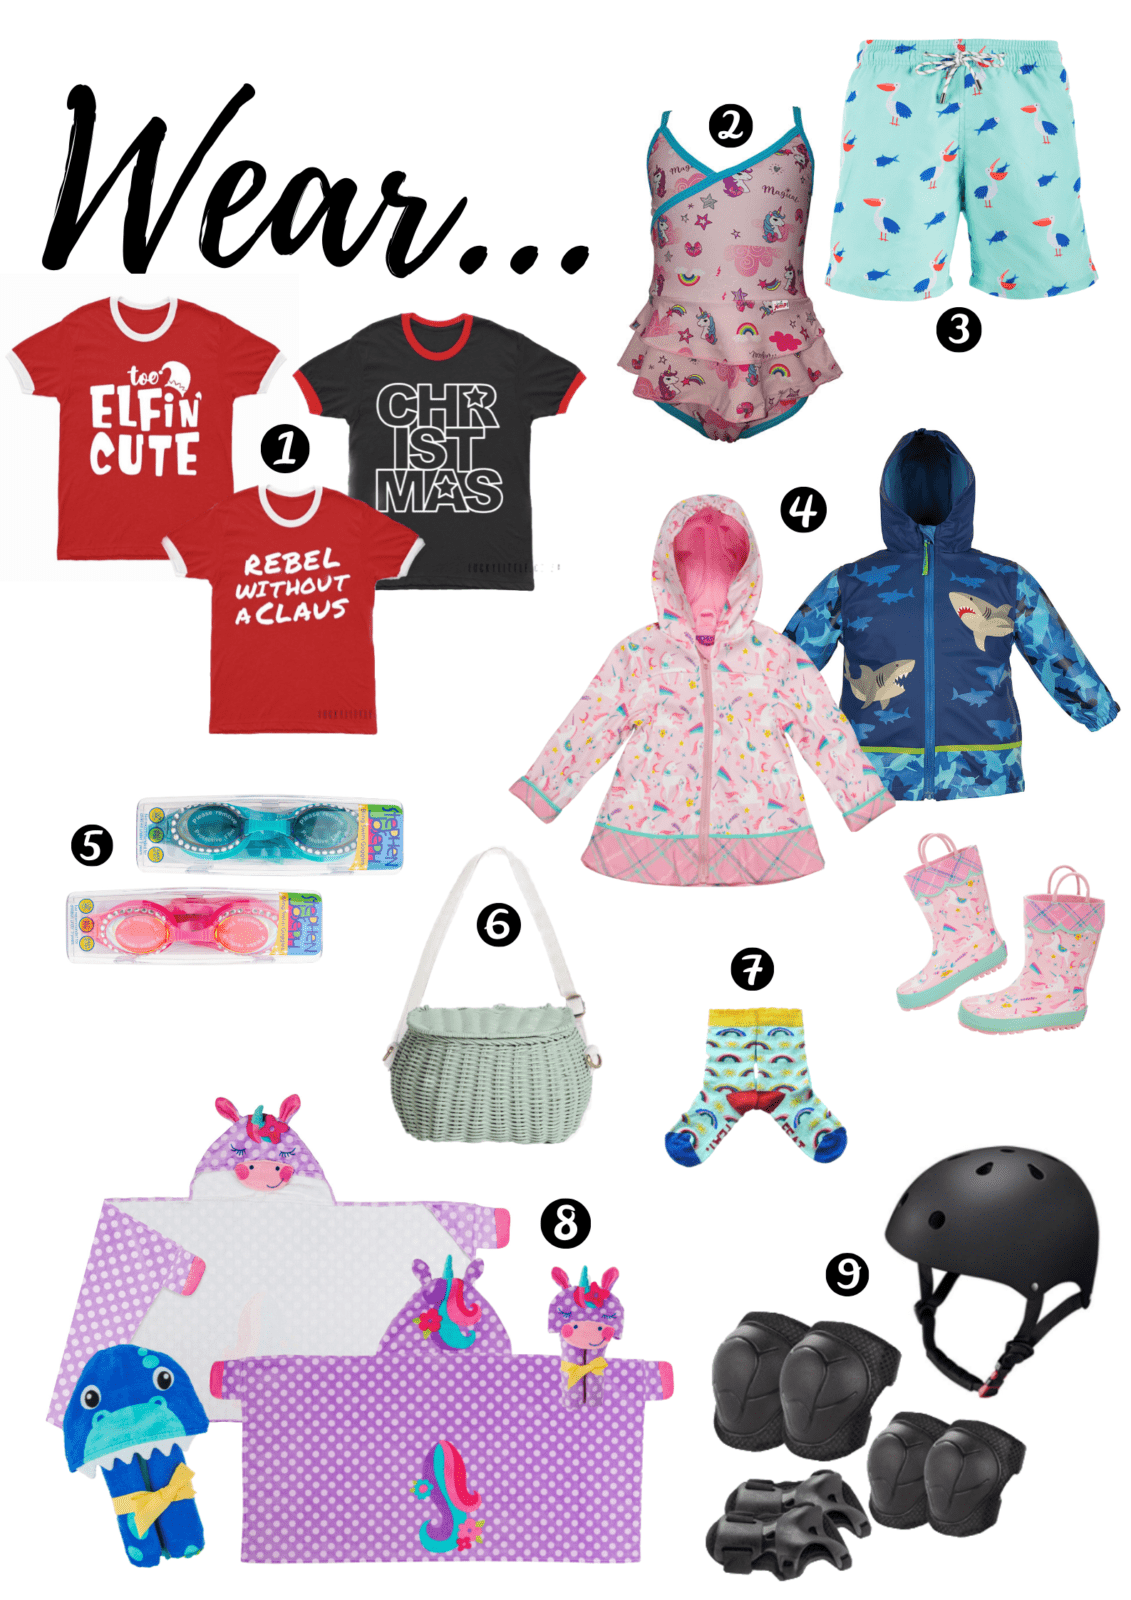 Want Need Wear And Read Gift Guides For Kids 3